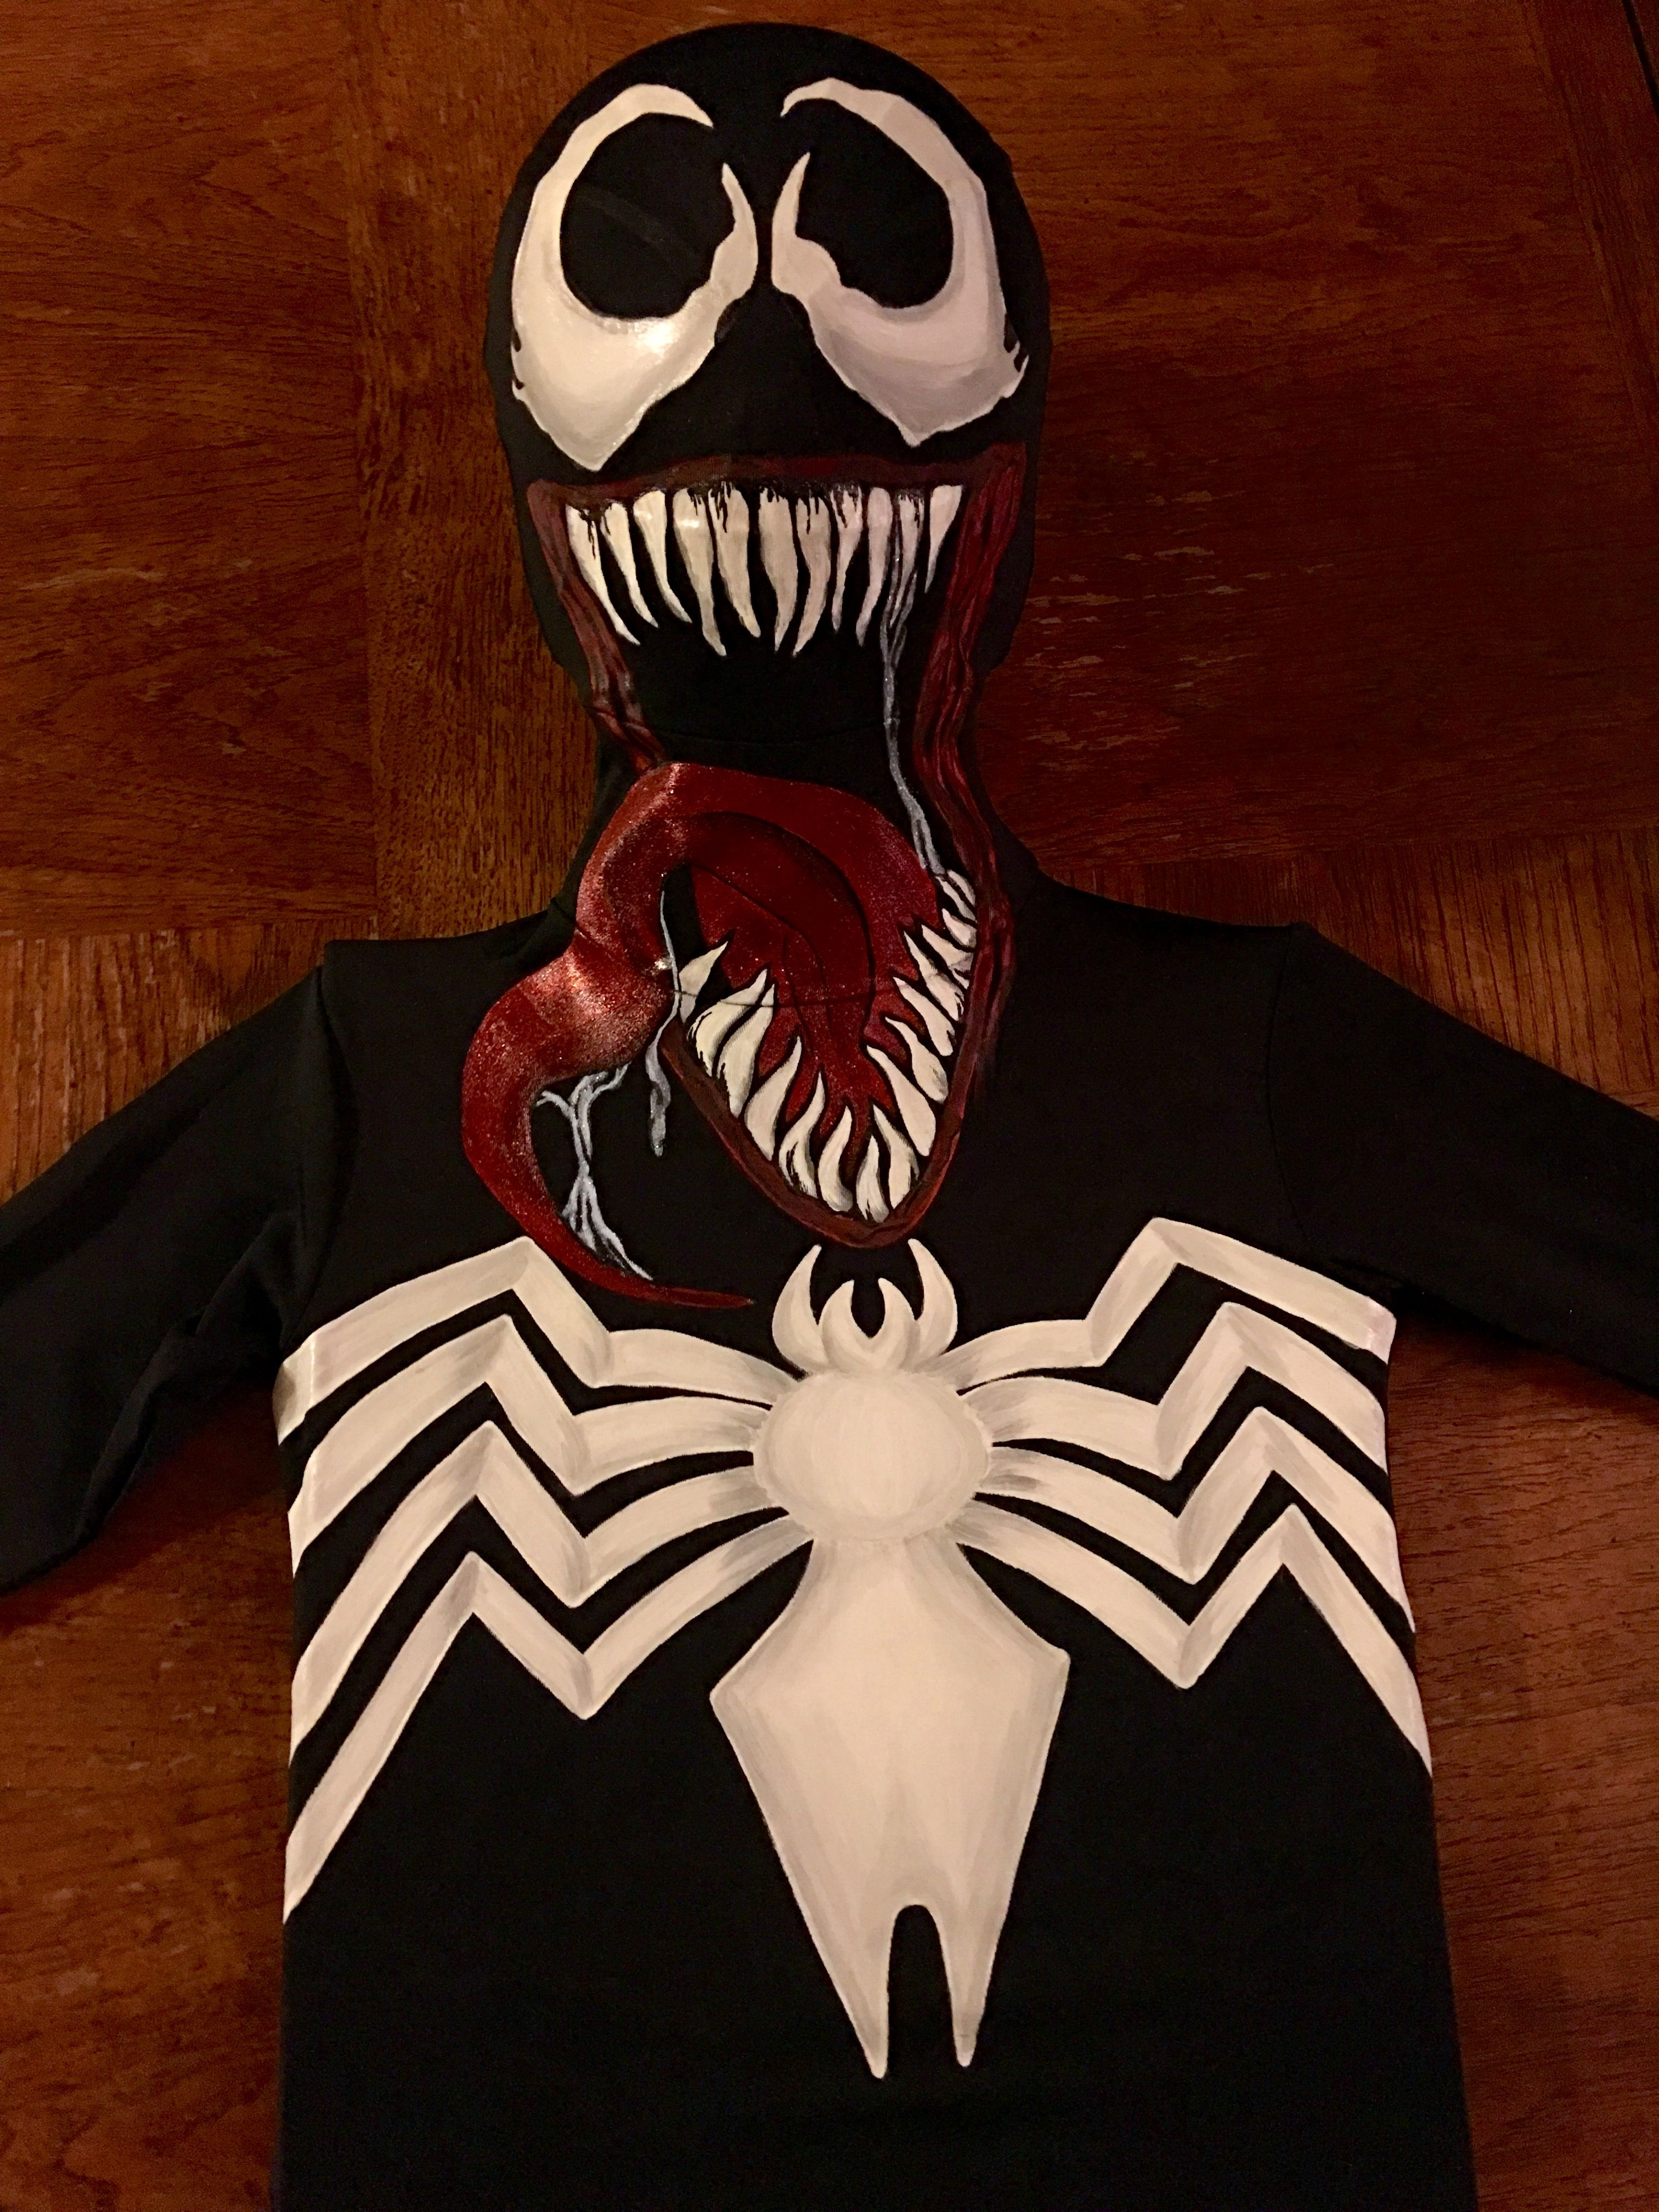 Diy Venom Costume Handpainted Venom Childs Cosplay From A Morphsuit